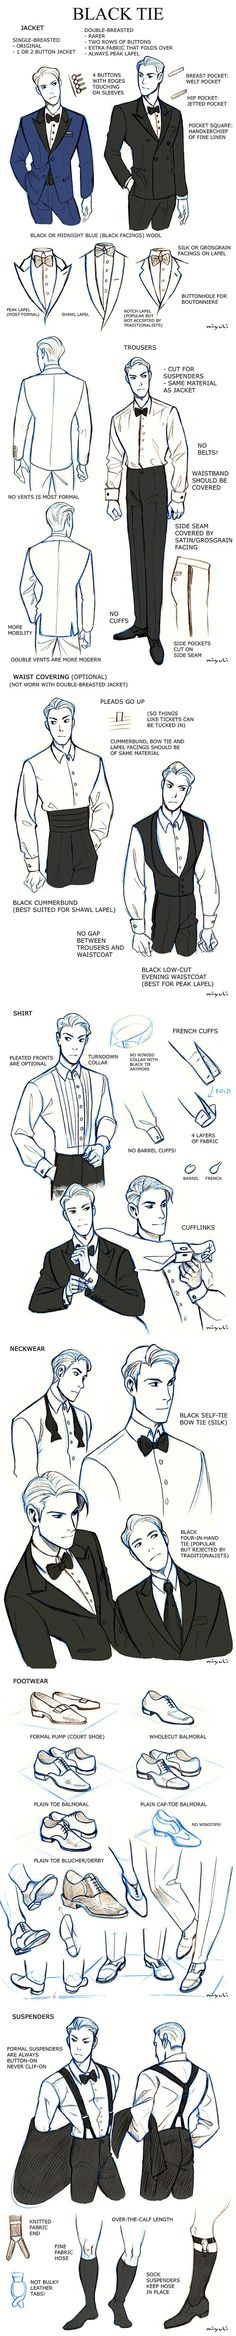 Black Tie (suit tutorial) by miyuli